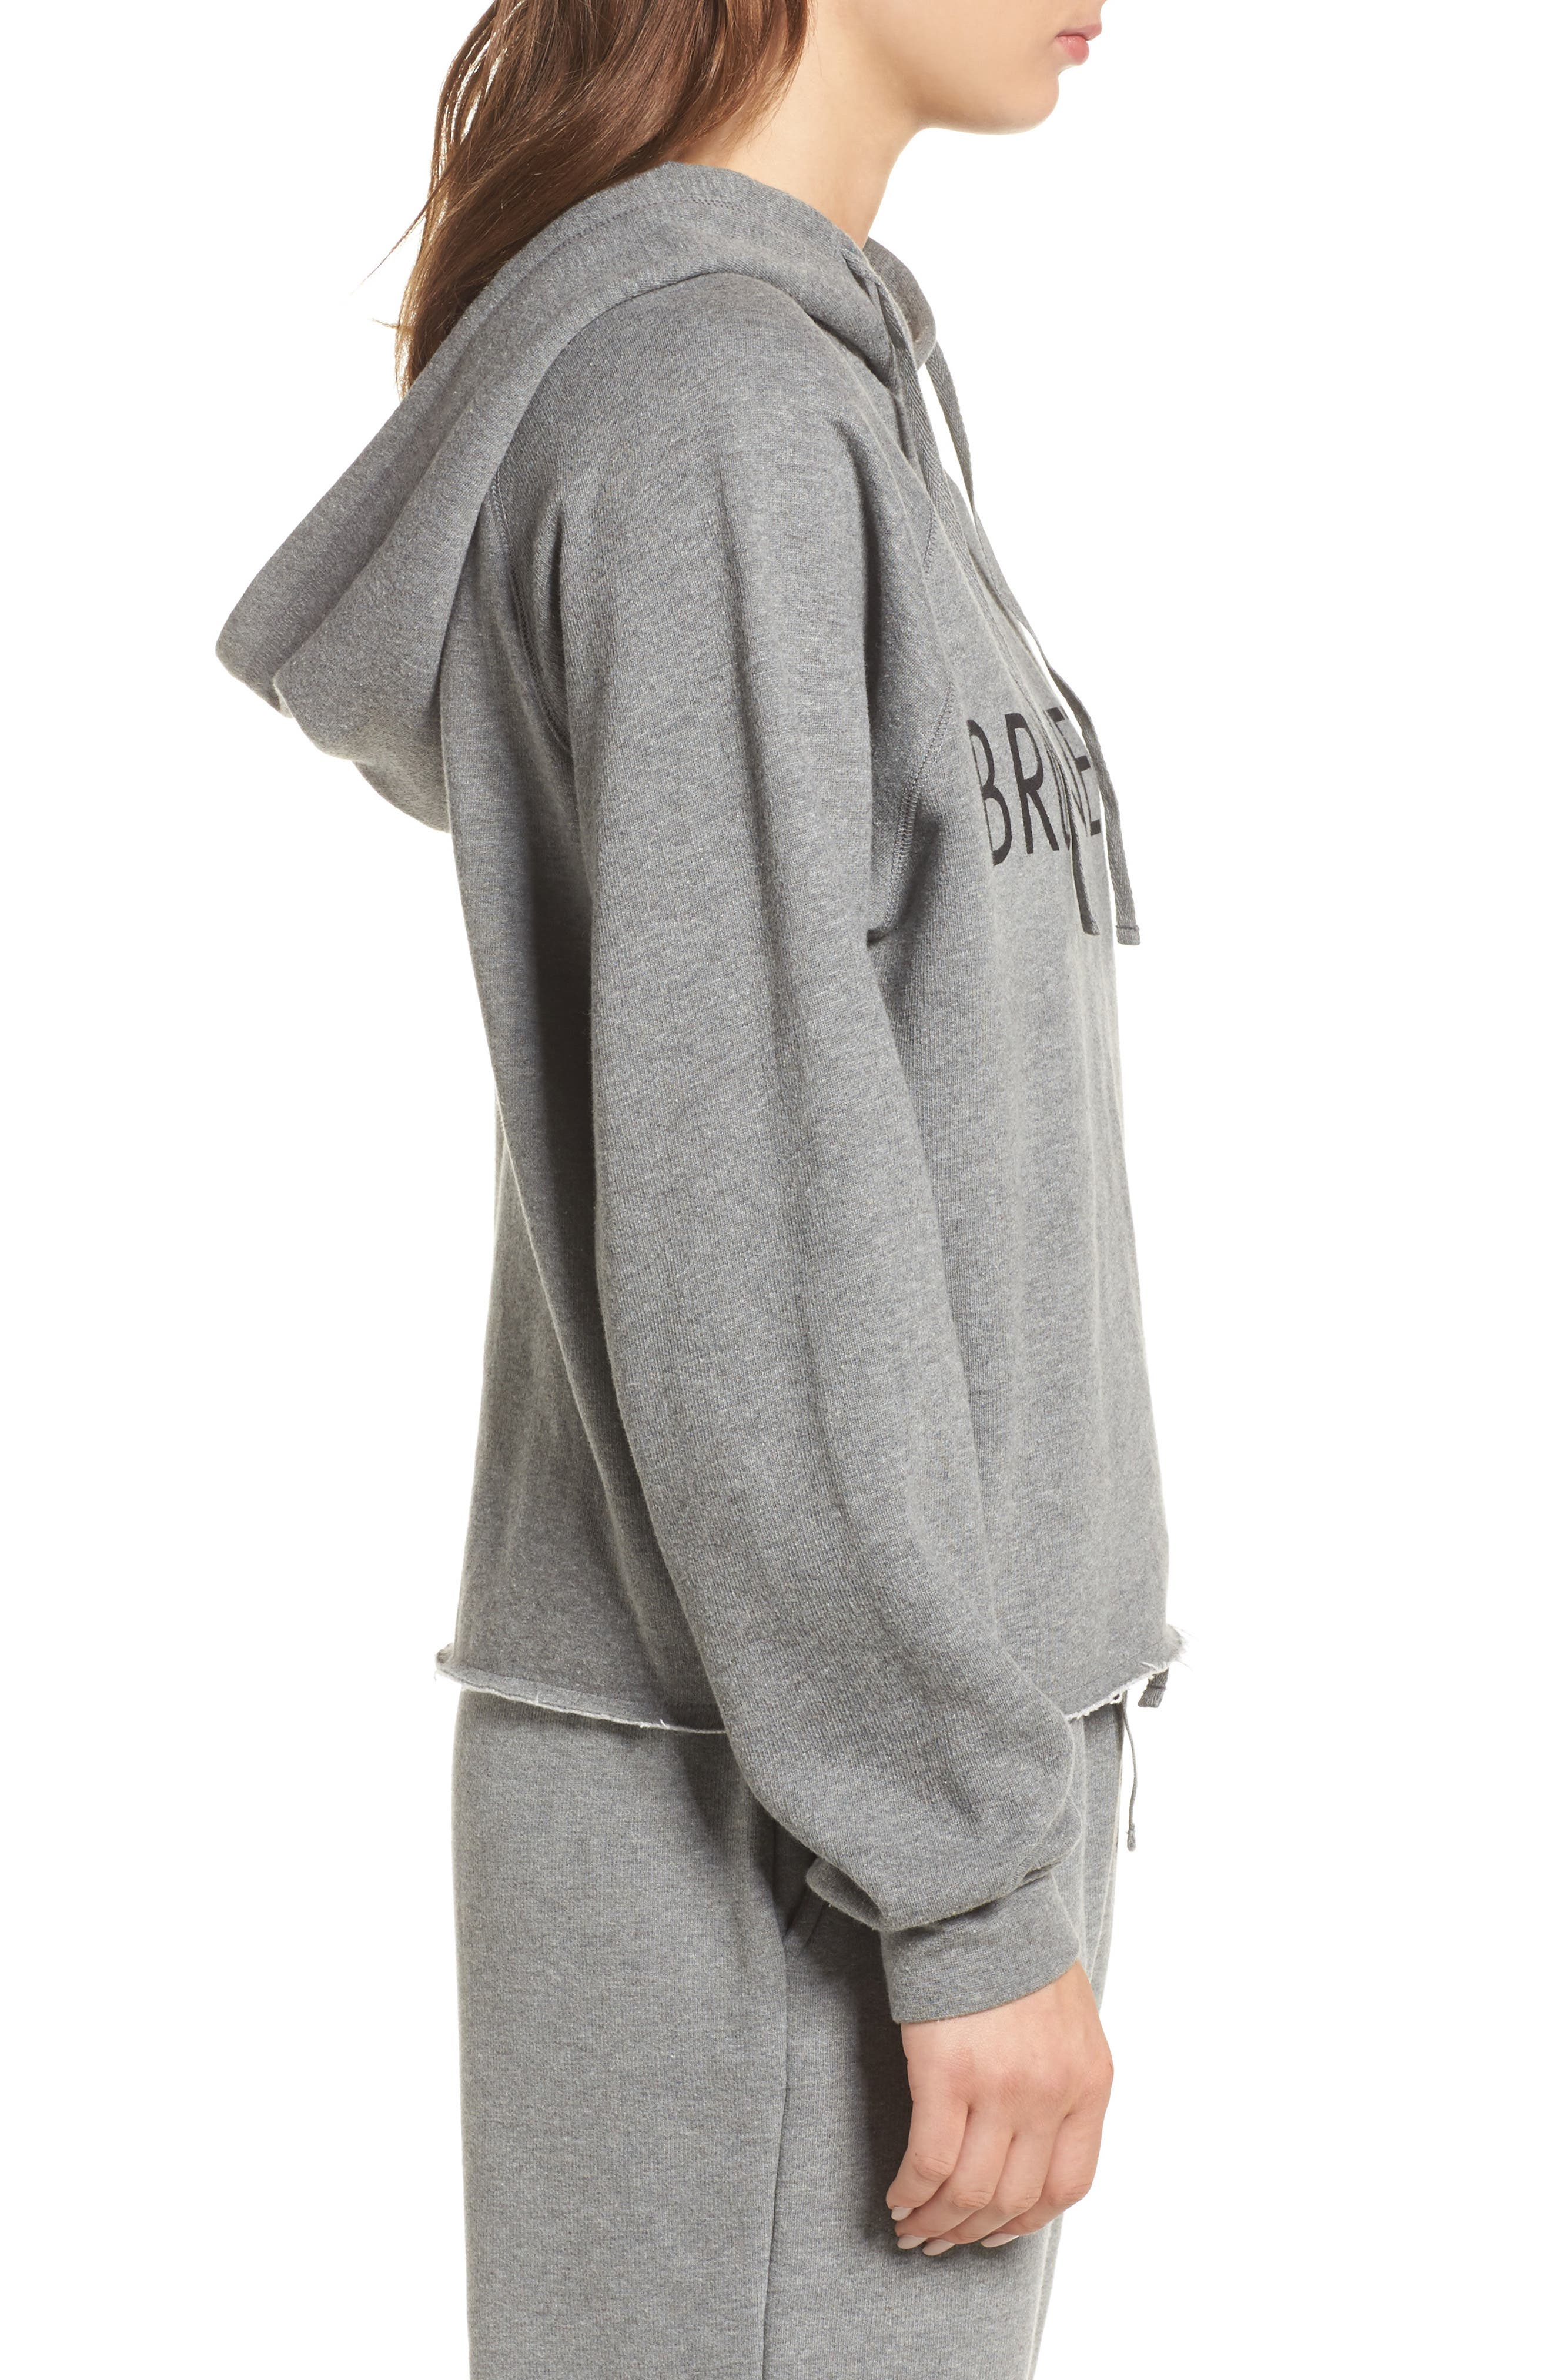 Brunette Raw Hem Hoodie,                             Alternate thumbnail 3, color,                             020